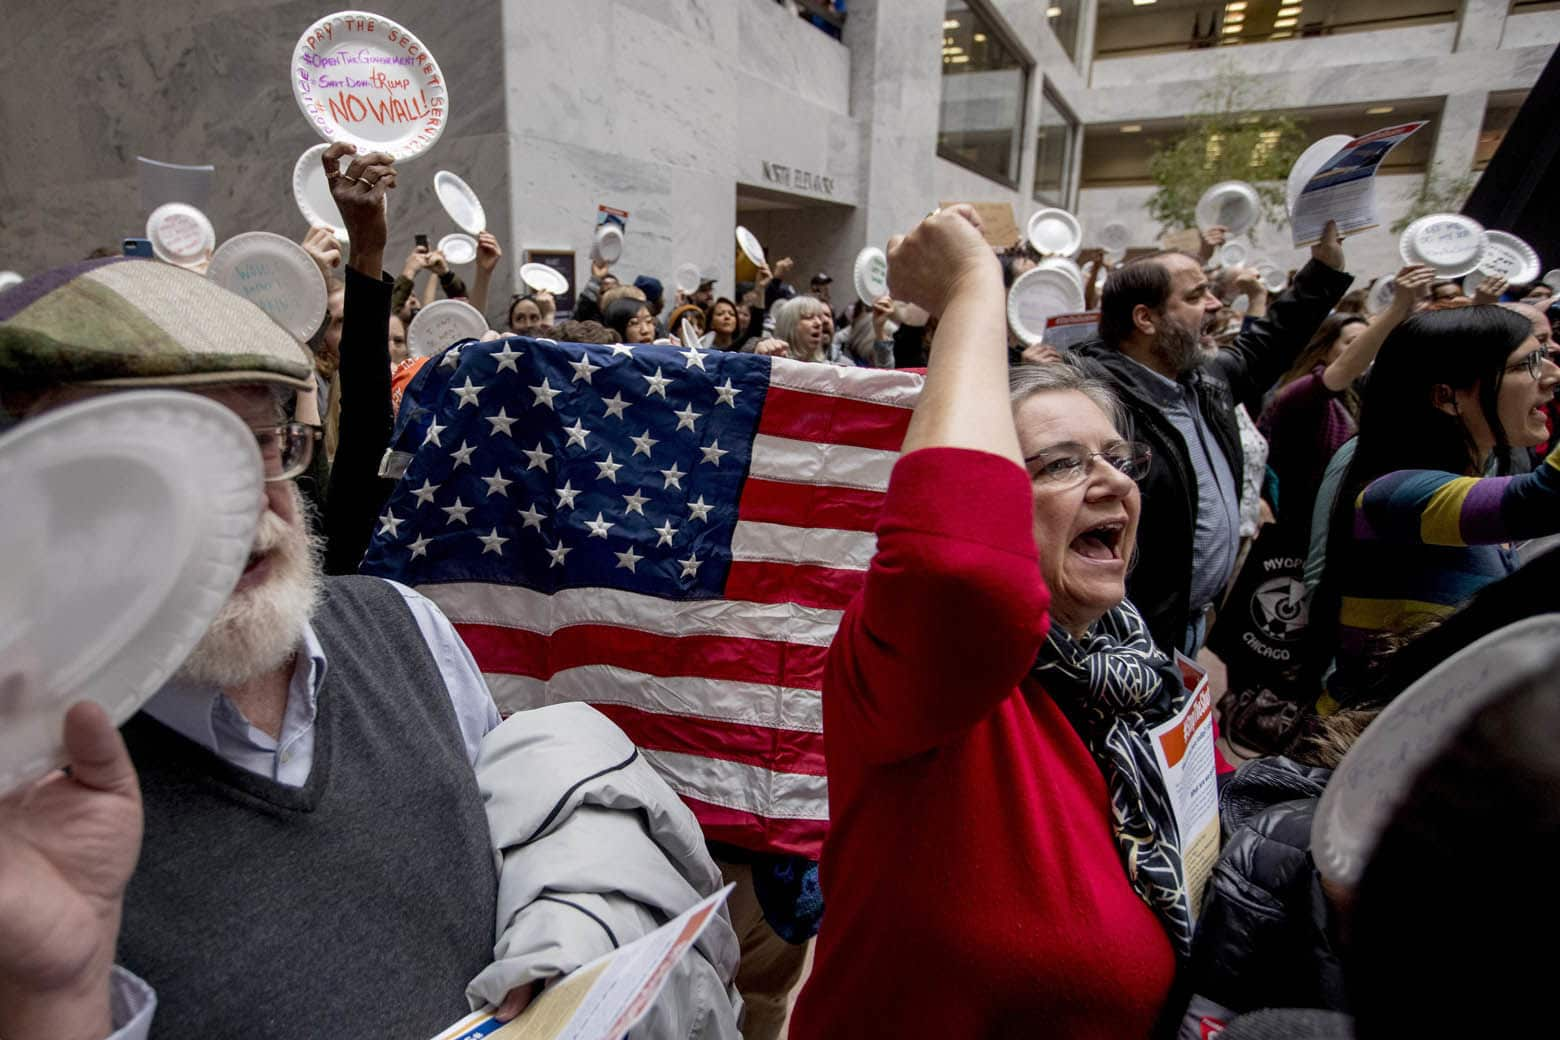 Furloughed government workers affected by the shutdown yell during a protest against the ongoing partial government shutdown on Capitol Hill in Washington, Wednesday, Jan. 23, 2019. (AP Photo/Andrew Harnik)